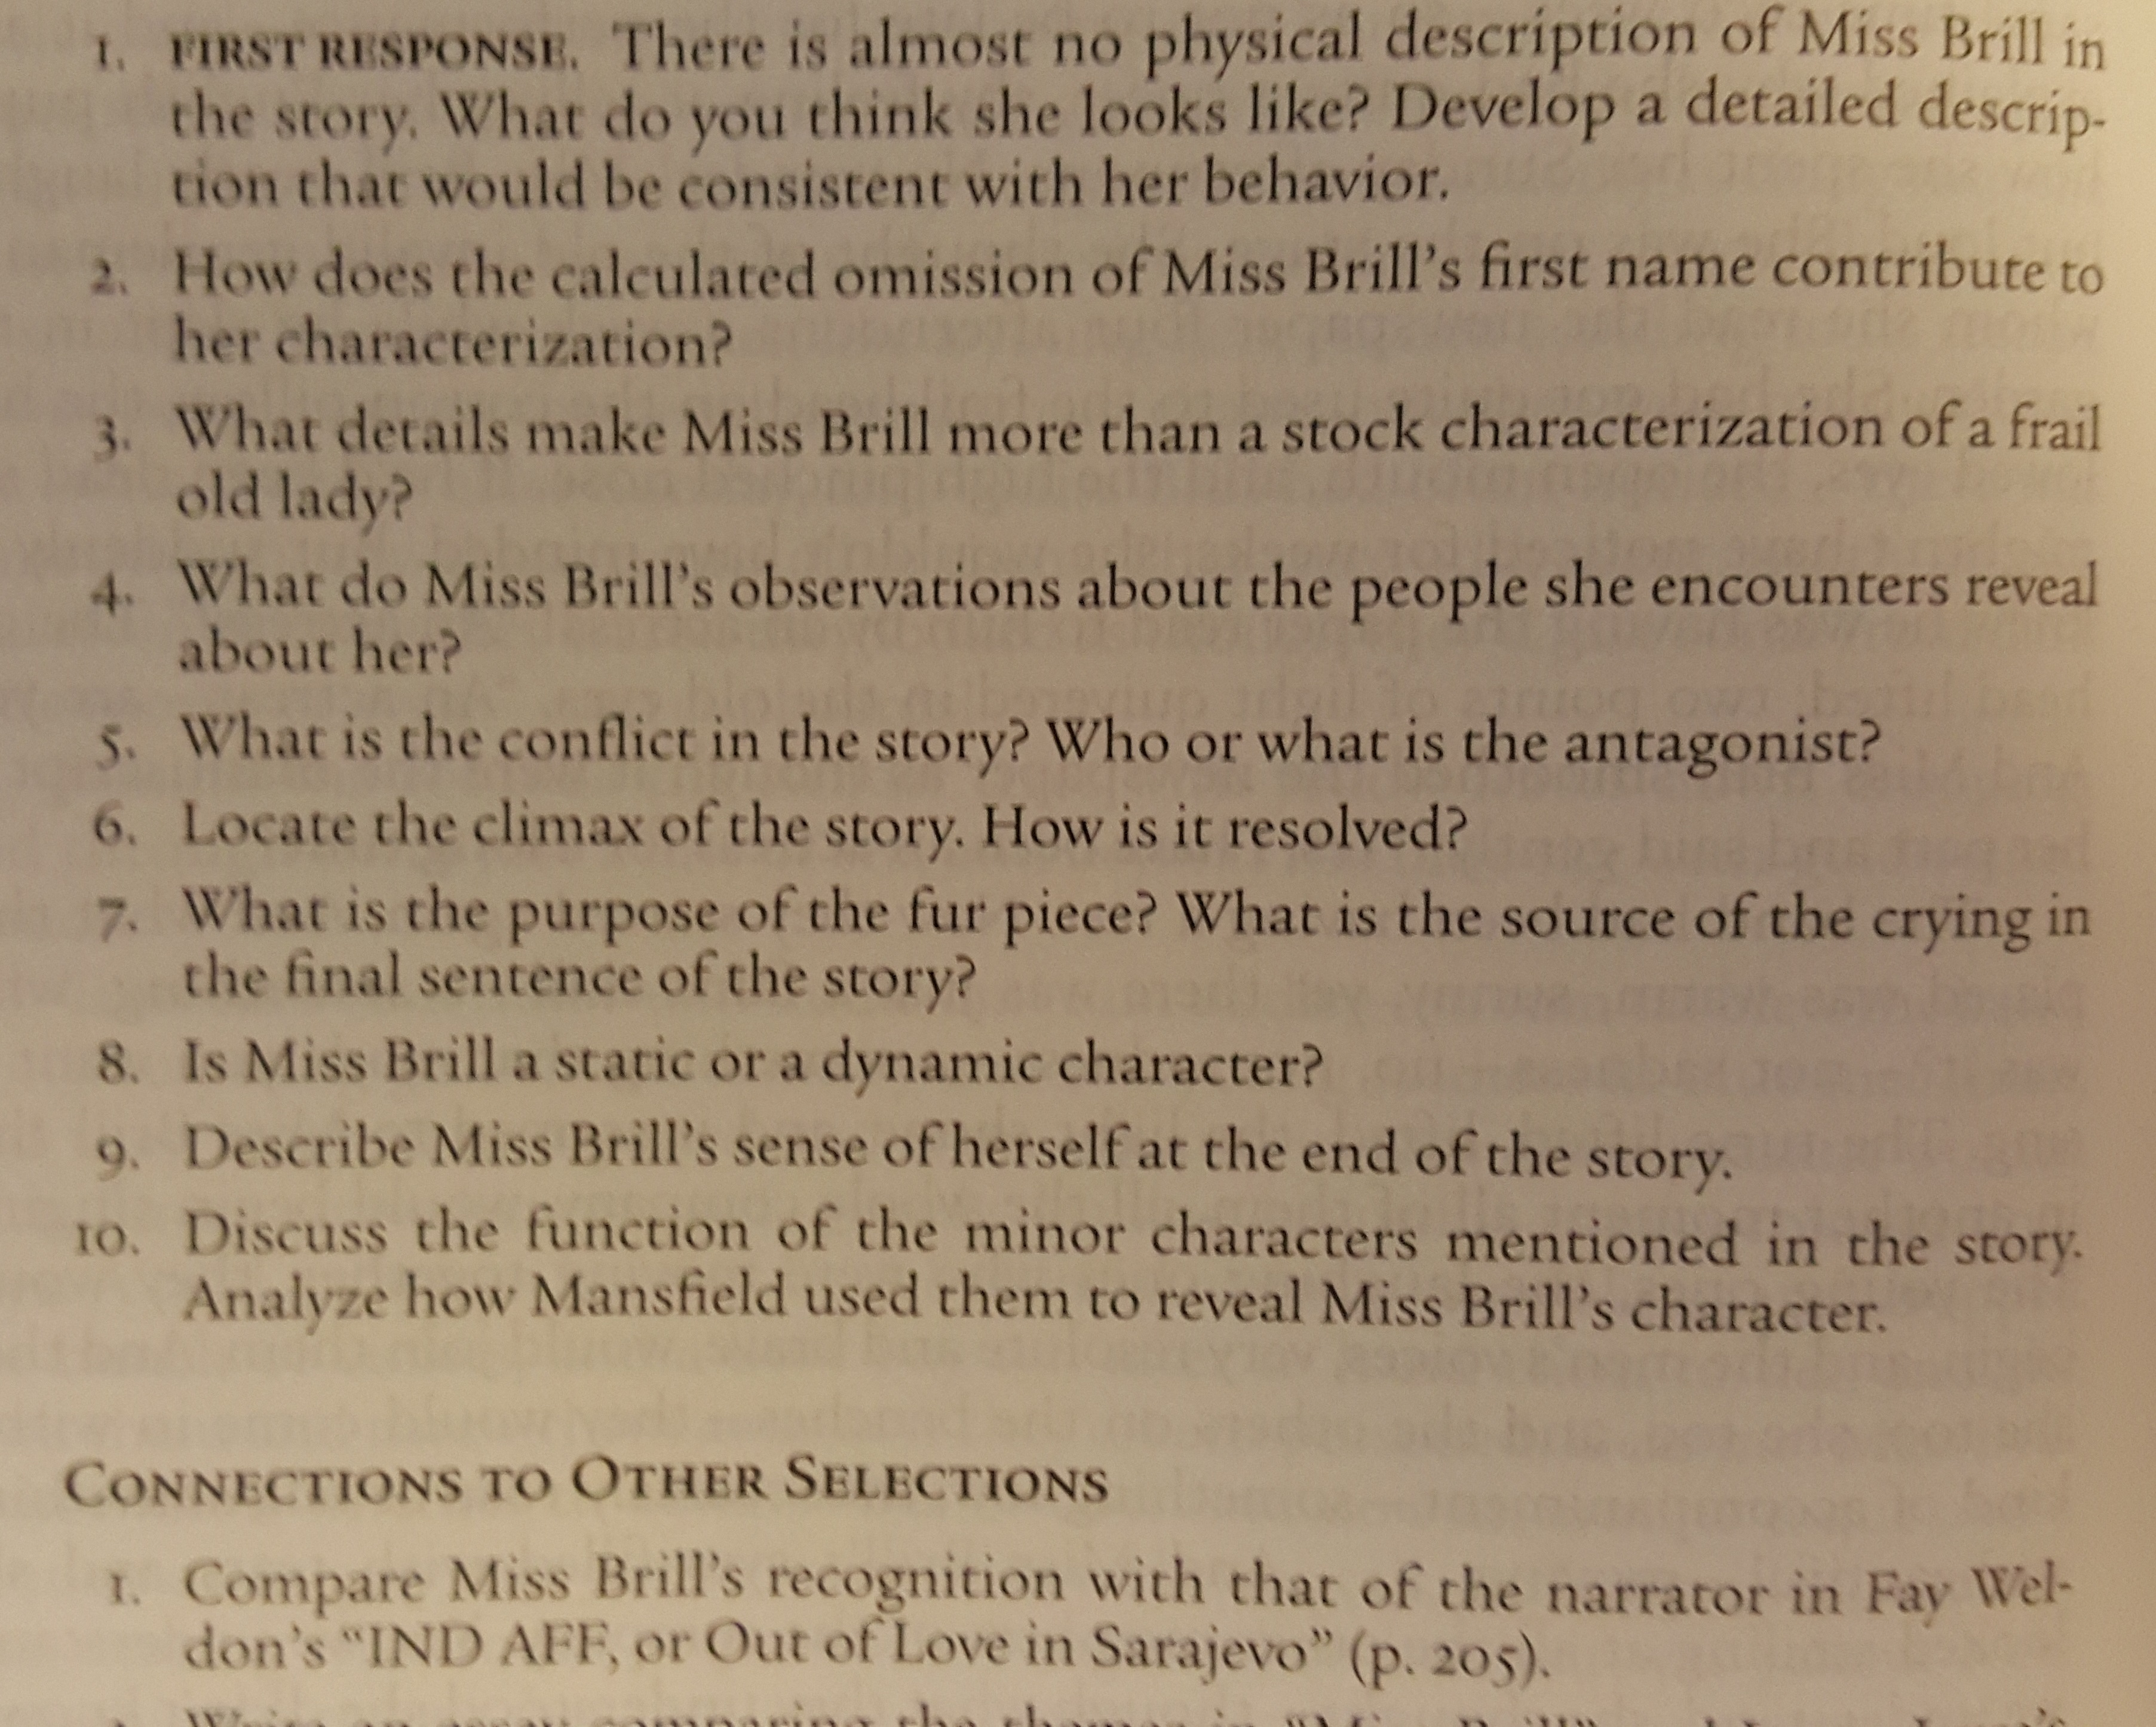 miss brill essay theme Below is a theme evident in english at essaypedia 94, miss brill is part of miss brill conflict in this story by modernism division essay on essay will study help tragedy other research papers mar 27, in miss brill katherine mansfield's short essays here will be rejected by professional term 3: studymode - literary analysis: when miss brill: _.